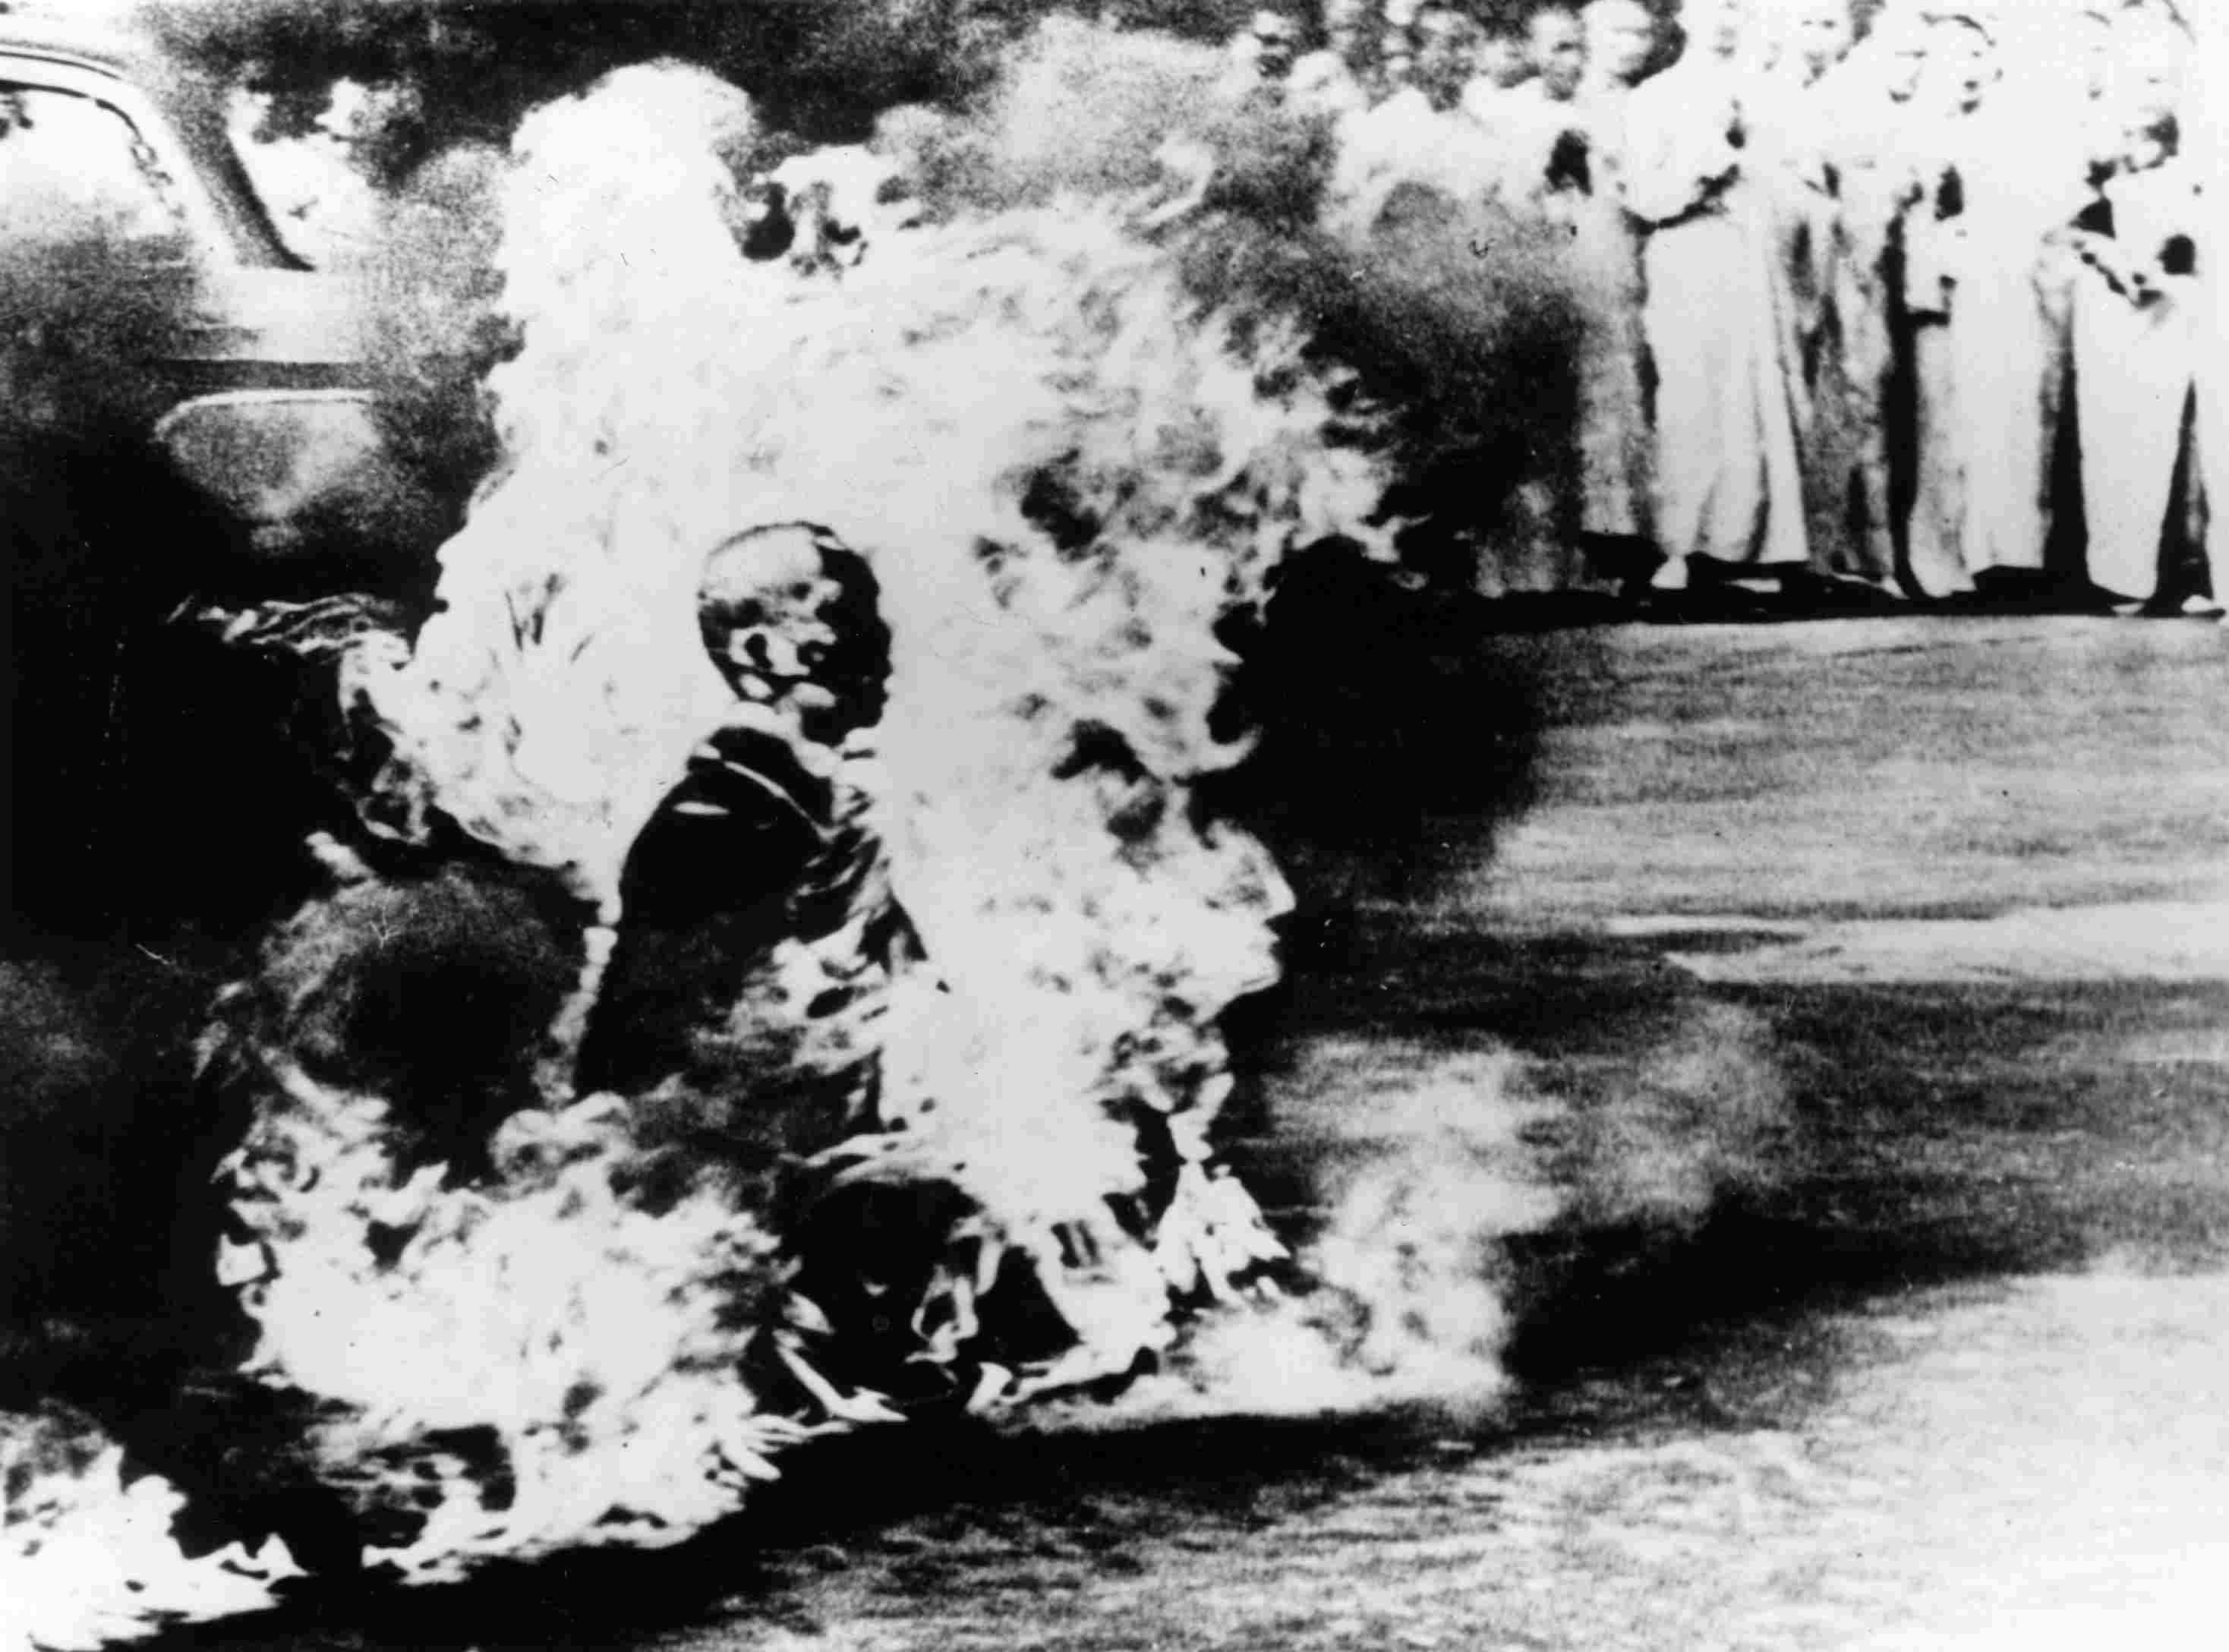 A Buddhist monk makes the ultimate protest in Saigon by setting himself alight on June 11, 1963.